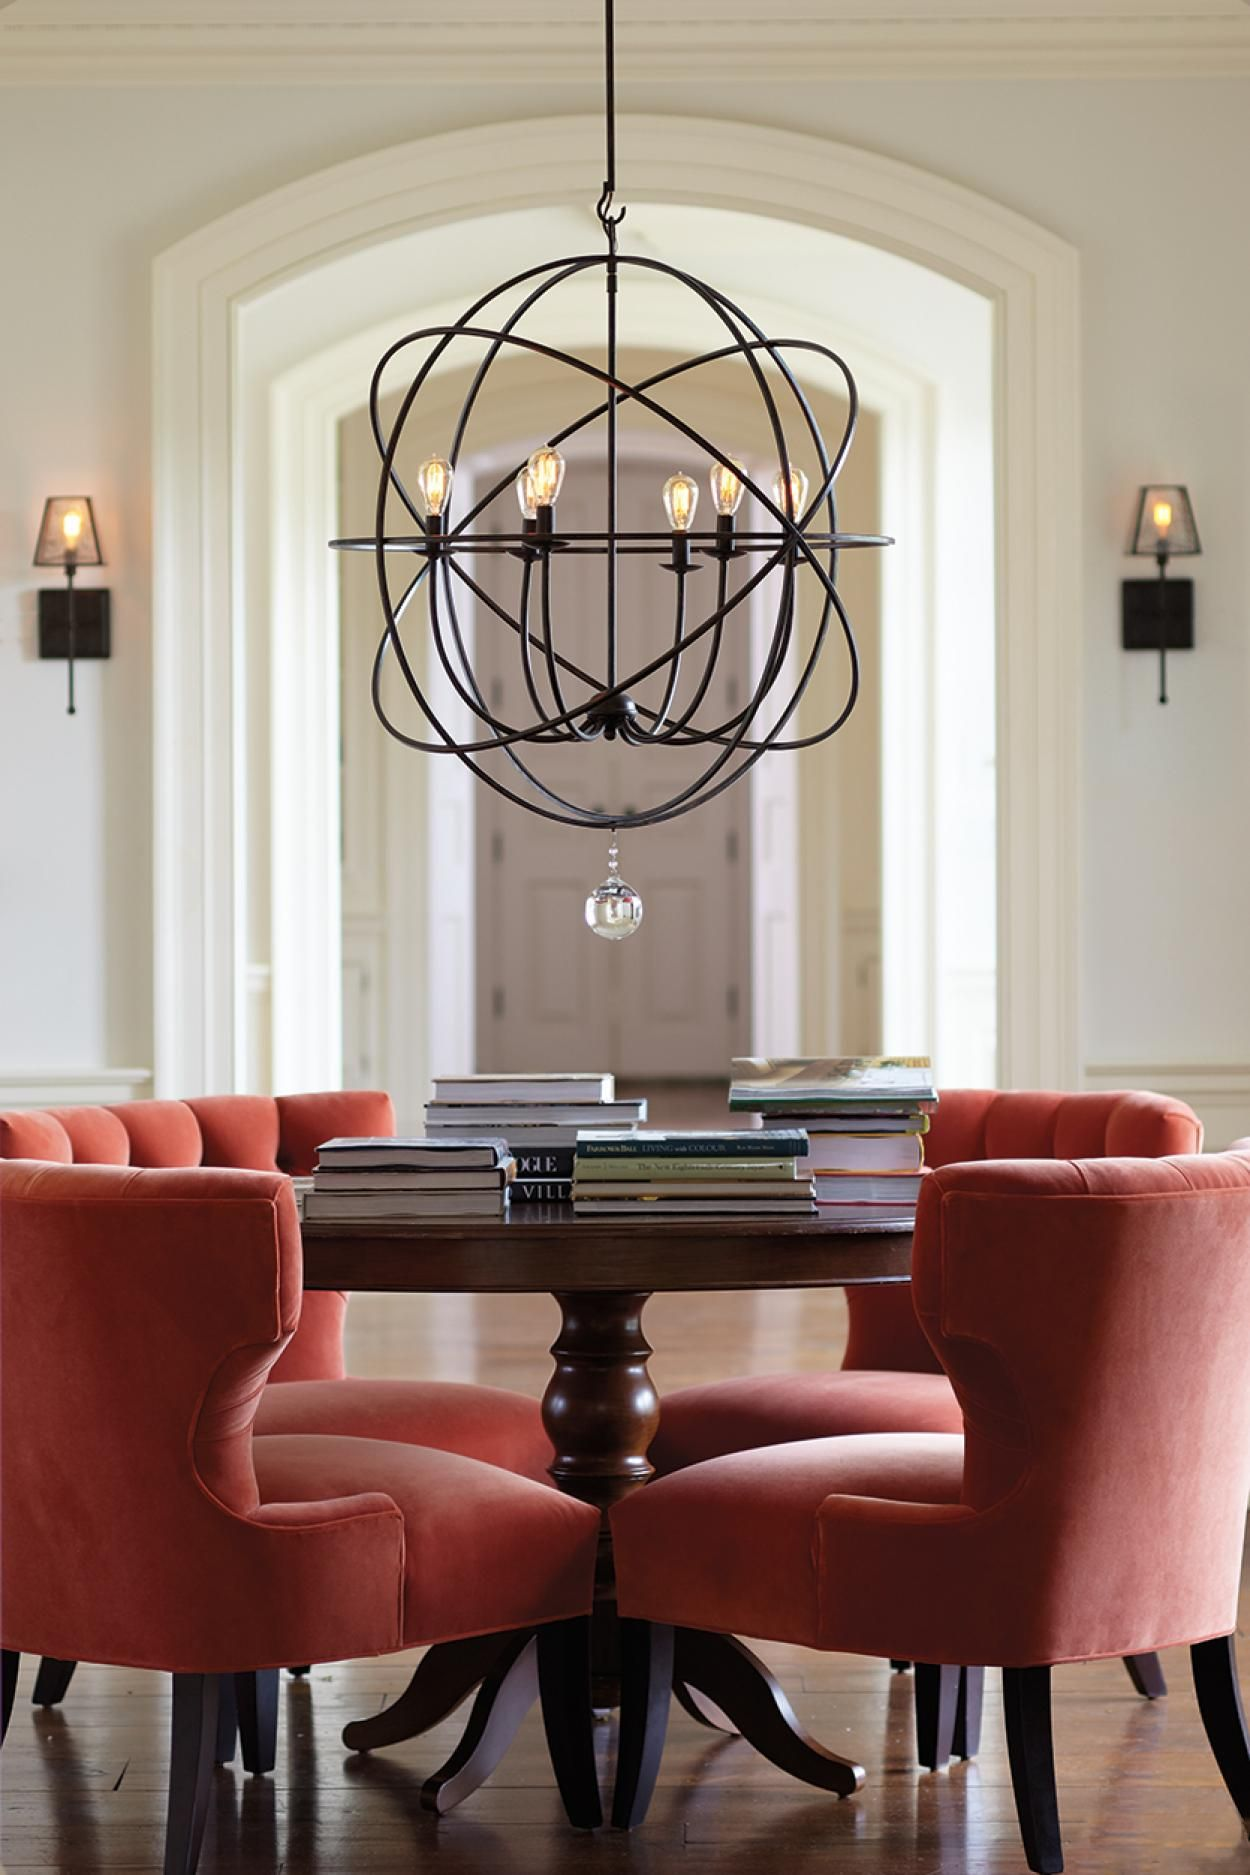 Elegant Chandeliers Dining Room Inspirtation With Electric Power Lamps